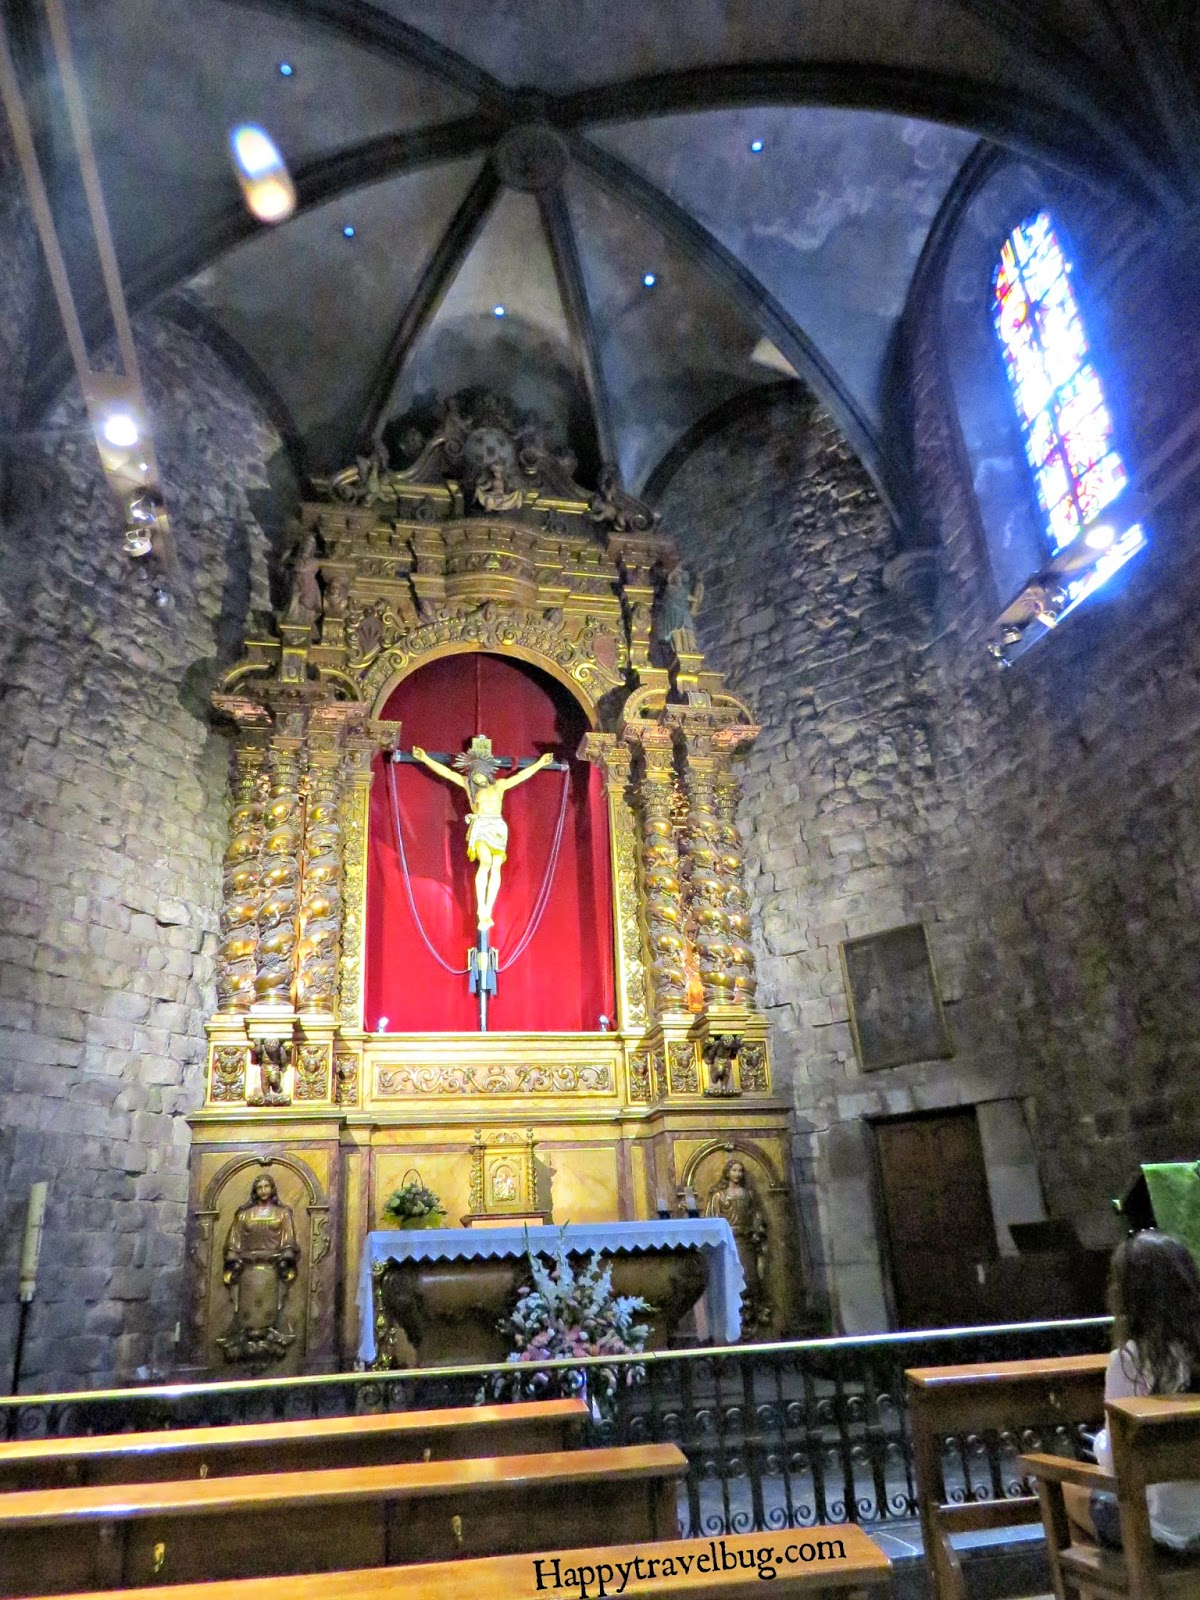 The chapel connected to The Basilica Santa Maria del Pi in Barcelona, Spain